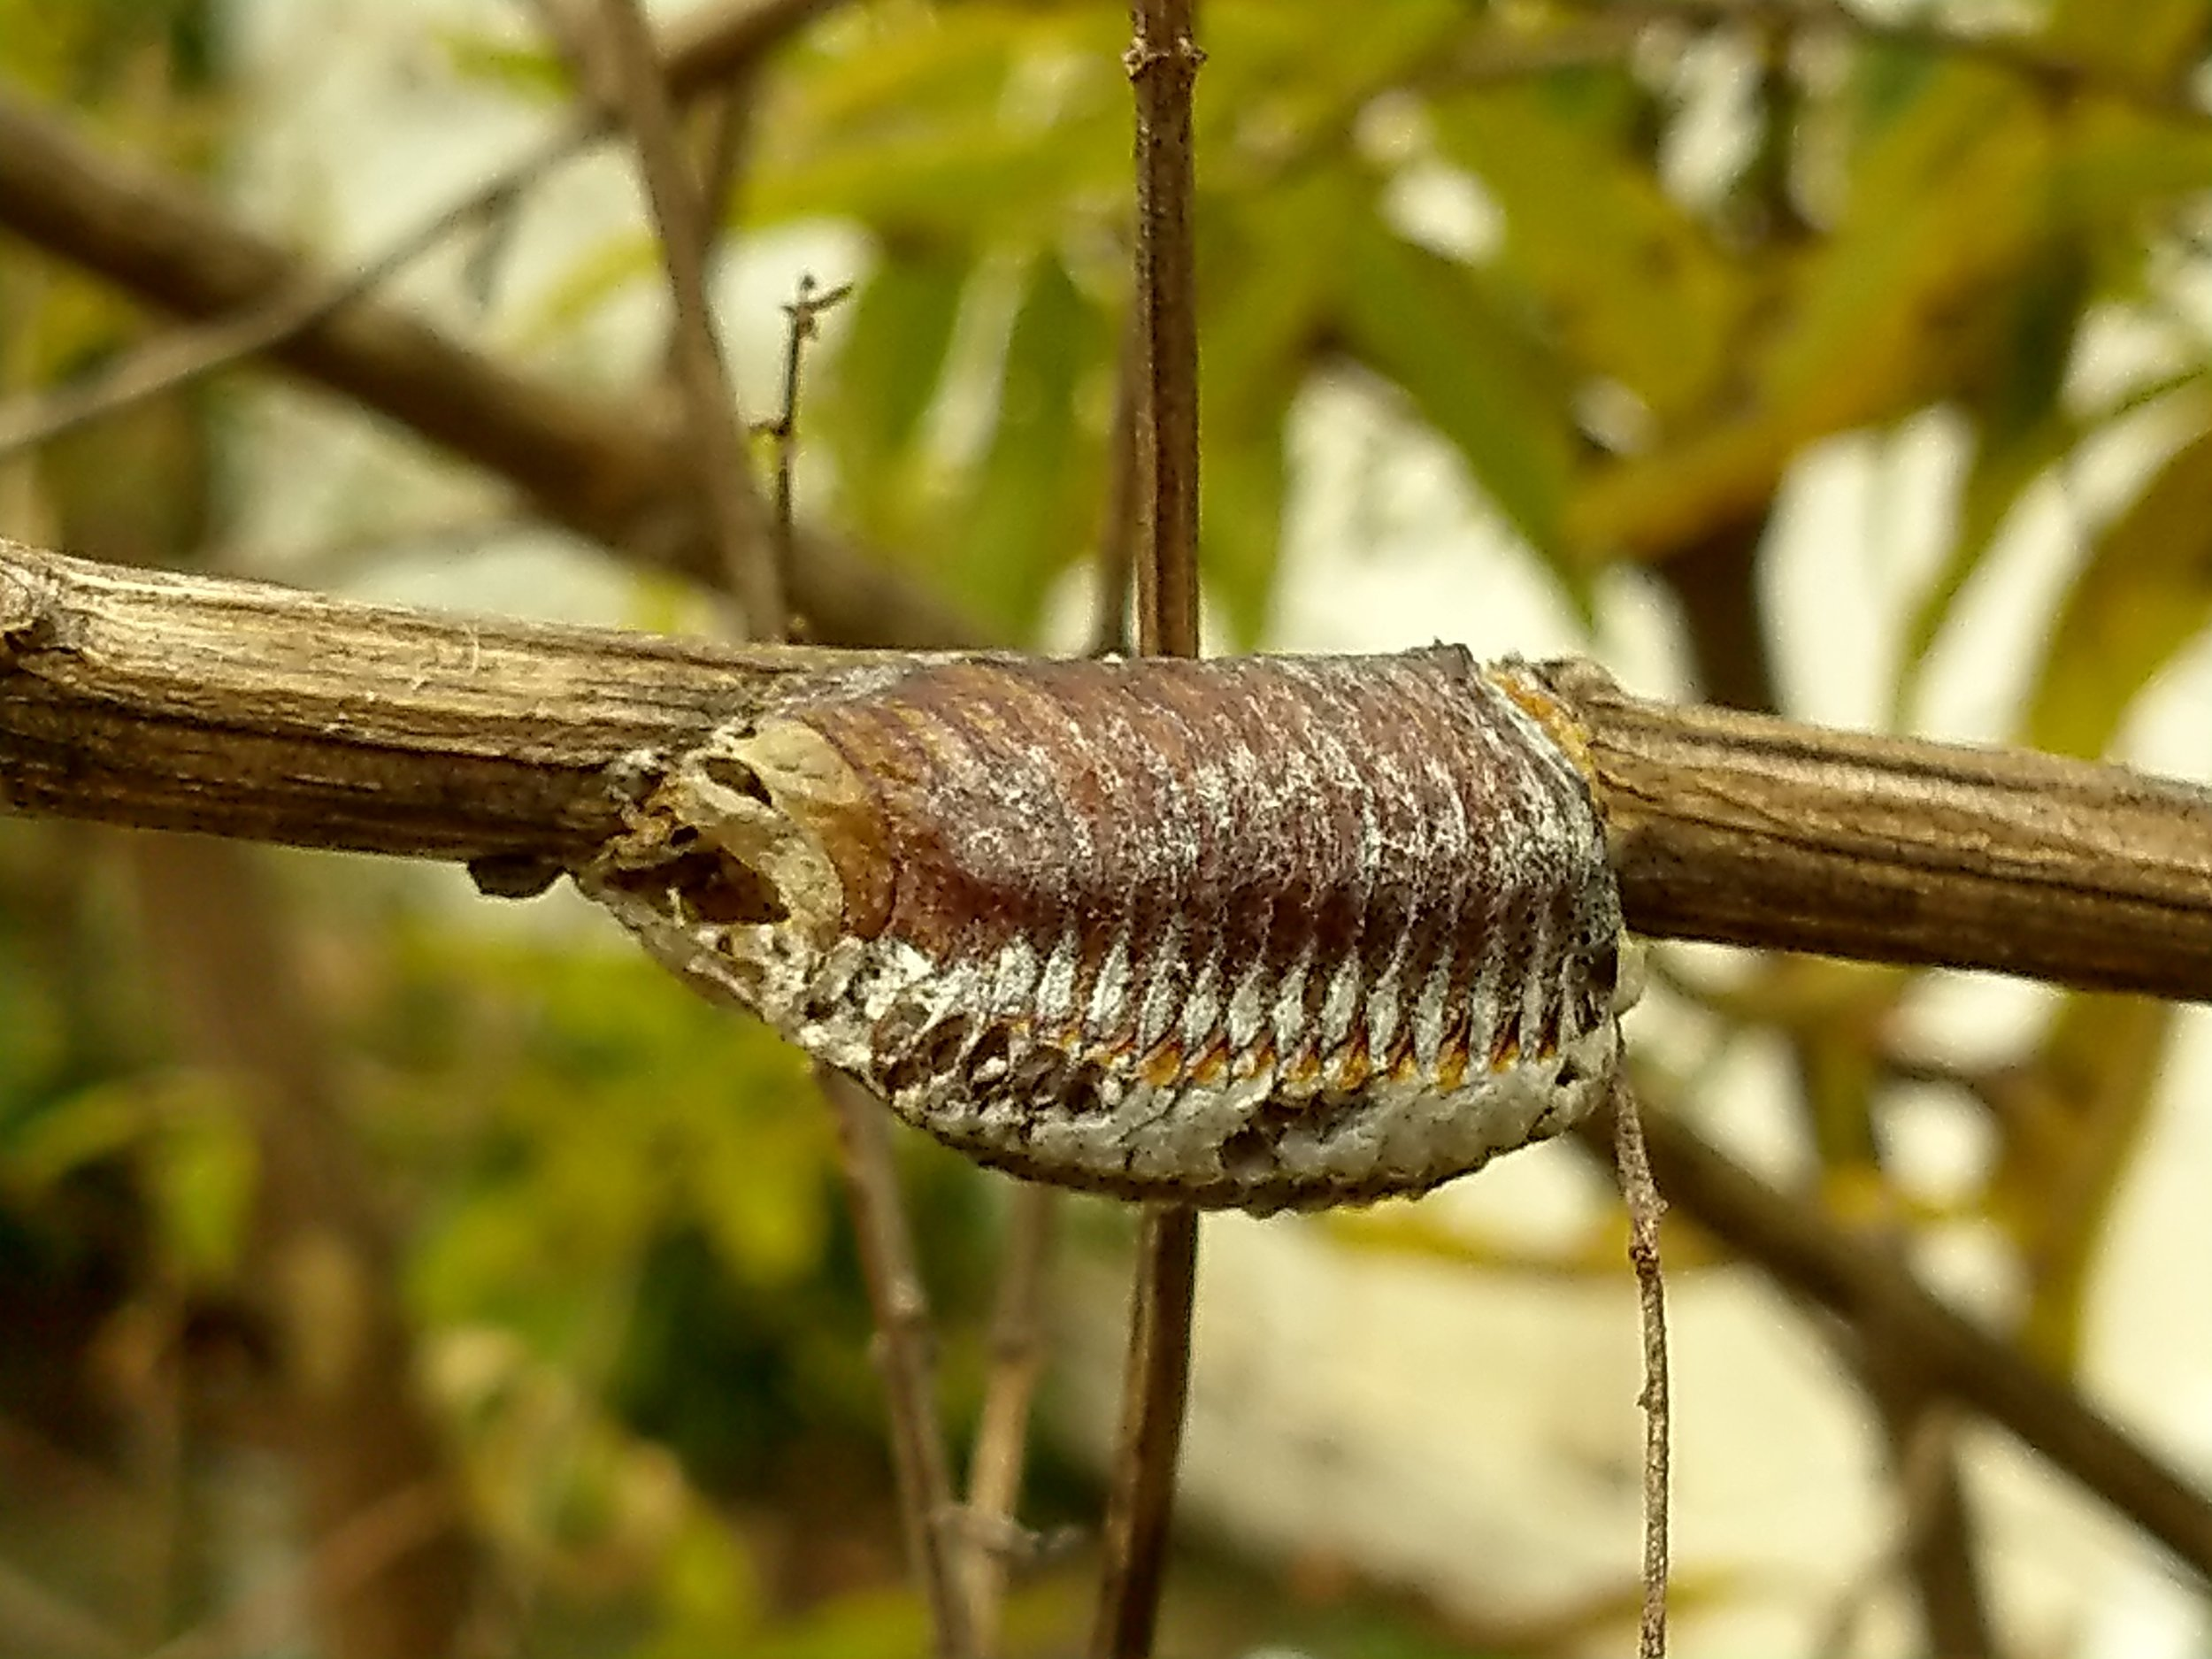 The Praying Mantis Egg Case And The Shrubbery The Amazing Plant